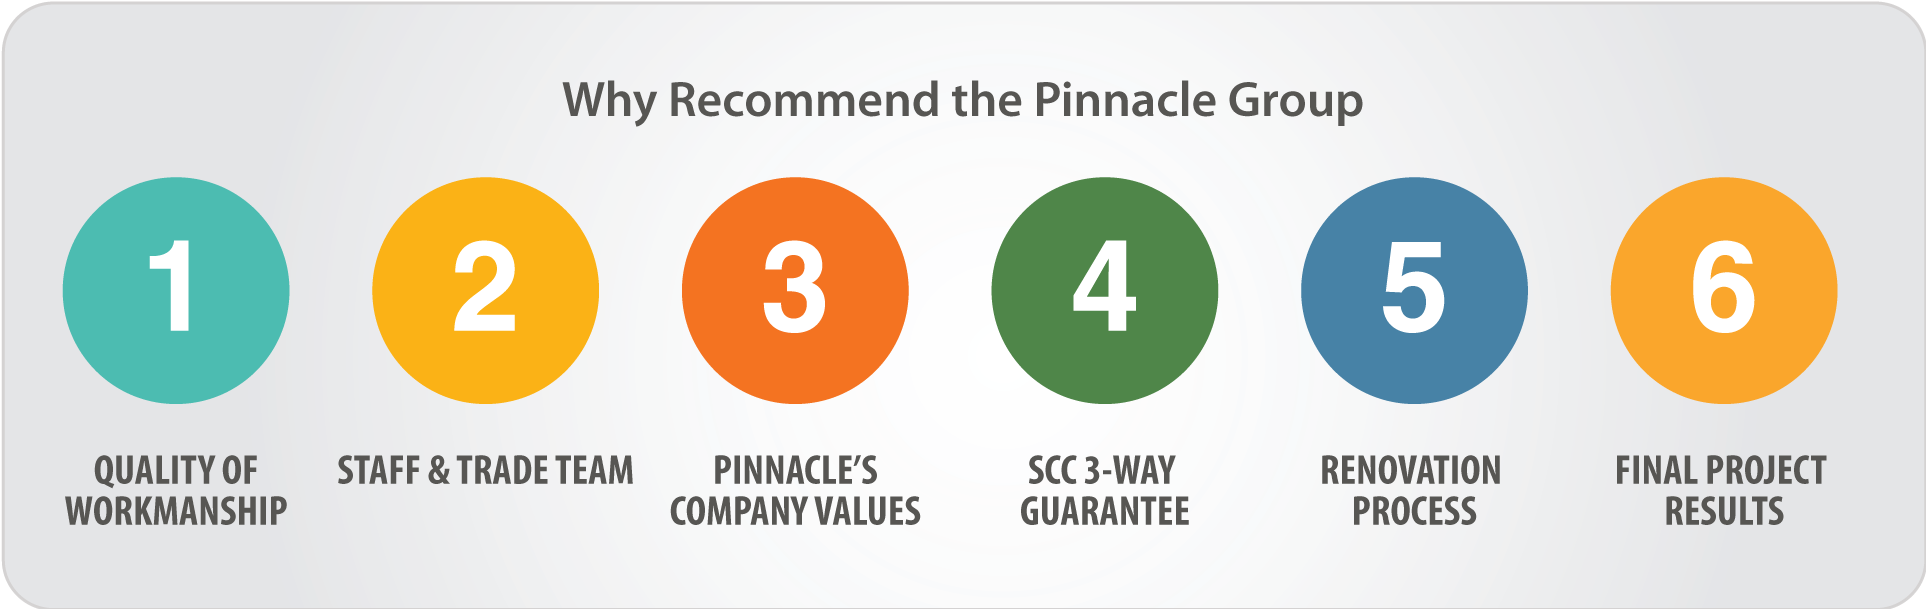 pinnacle_why_recommend